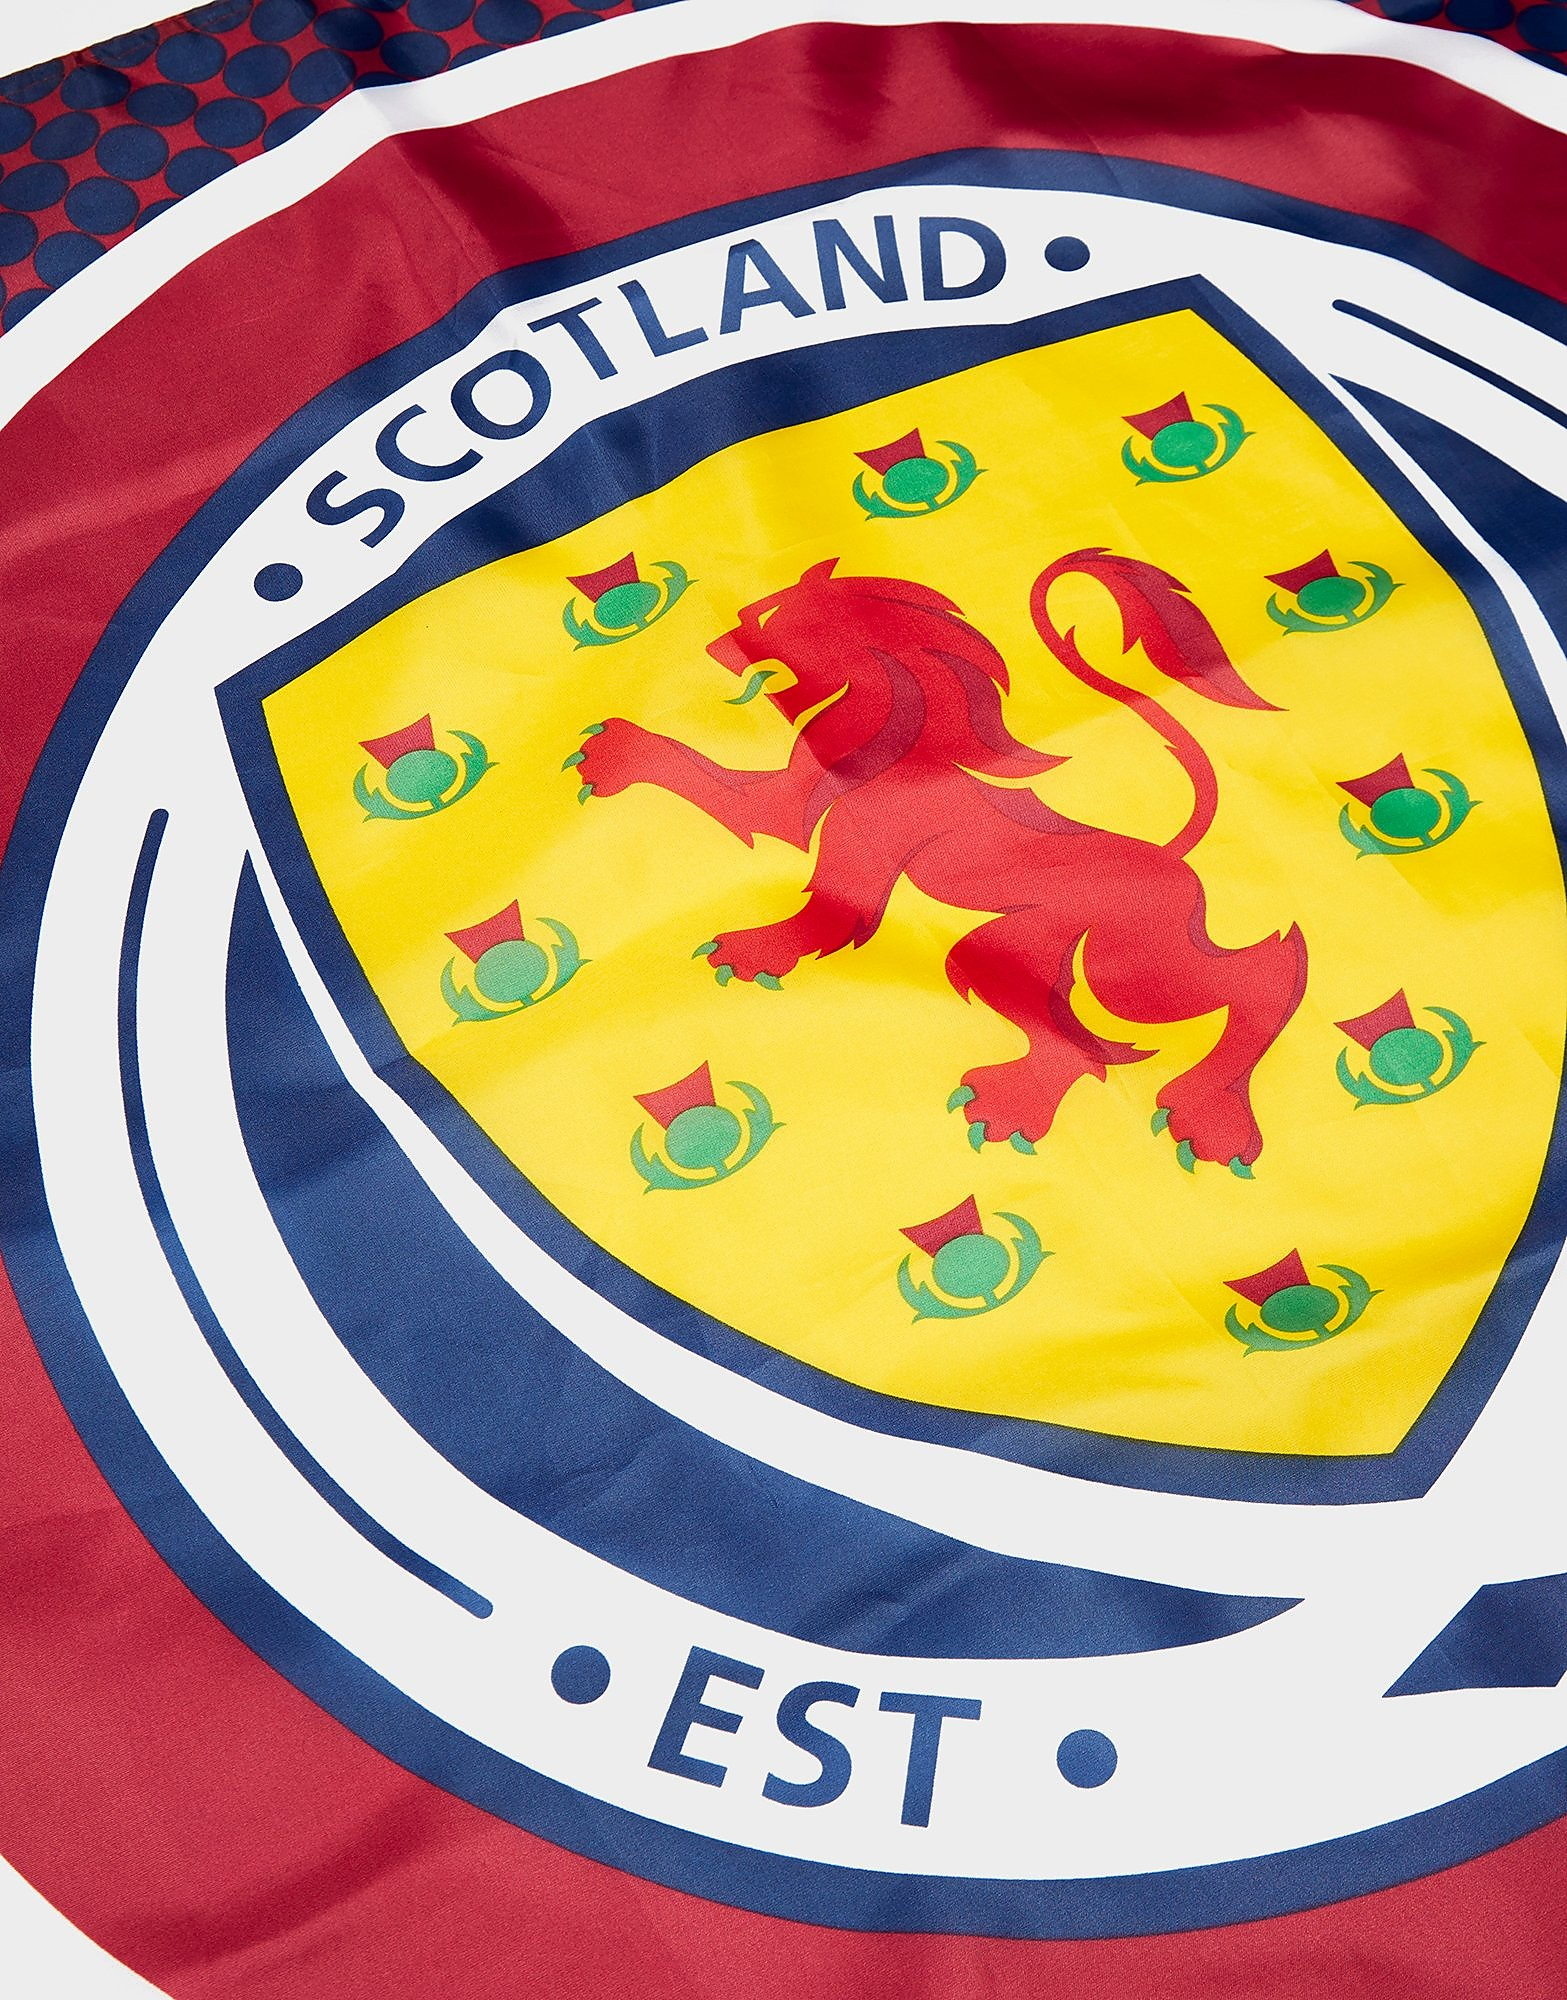 Official Team Vlag met Scotland FA in de roos